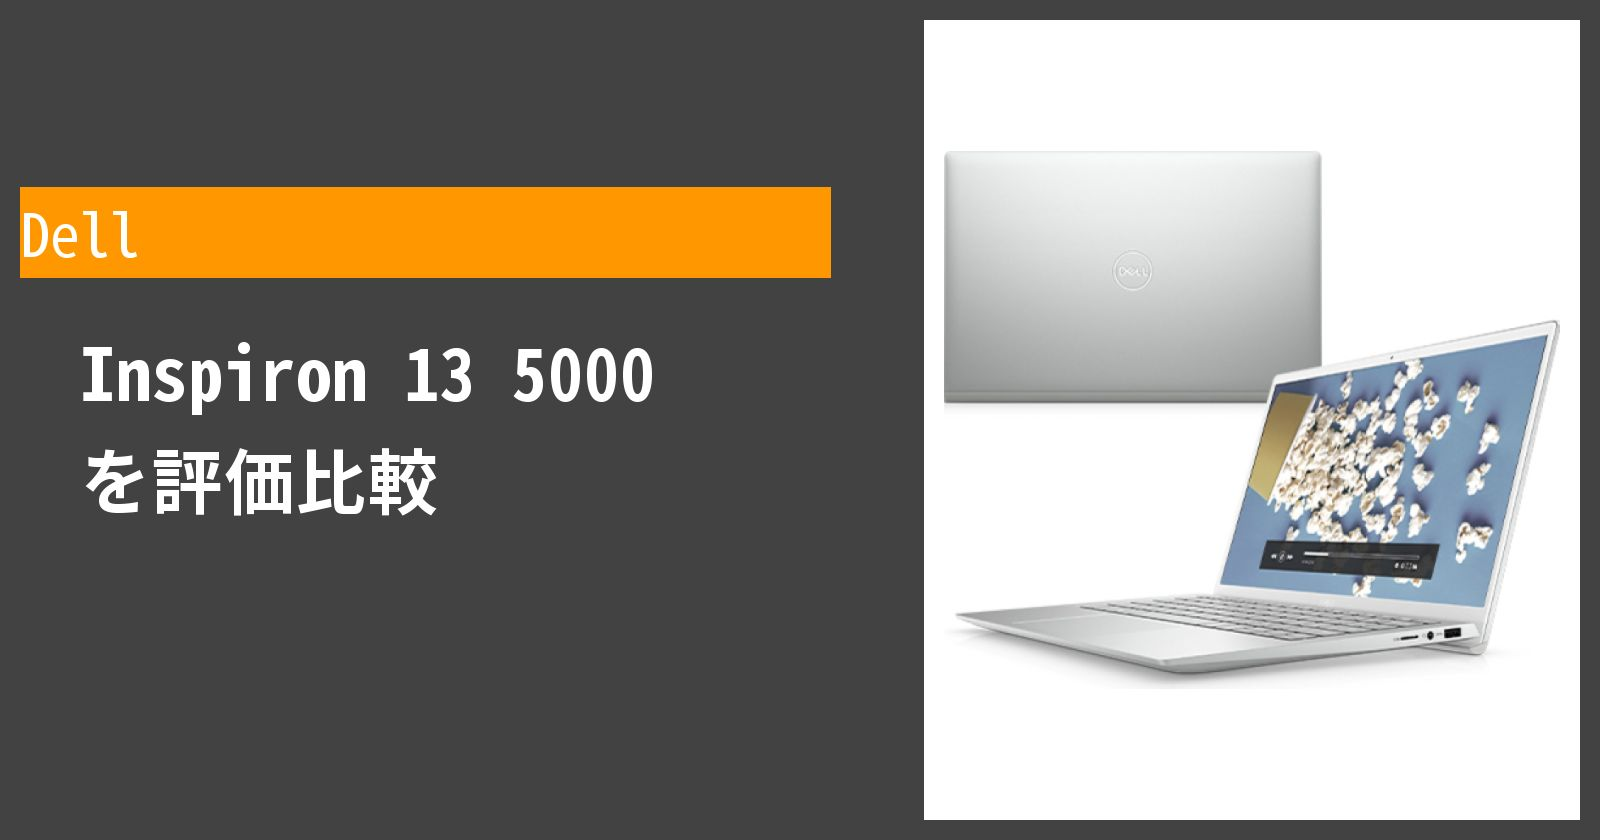 Inspiron 13 5000を徹底評価